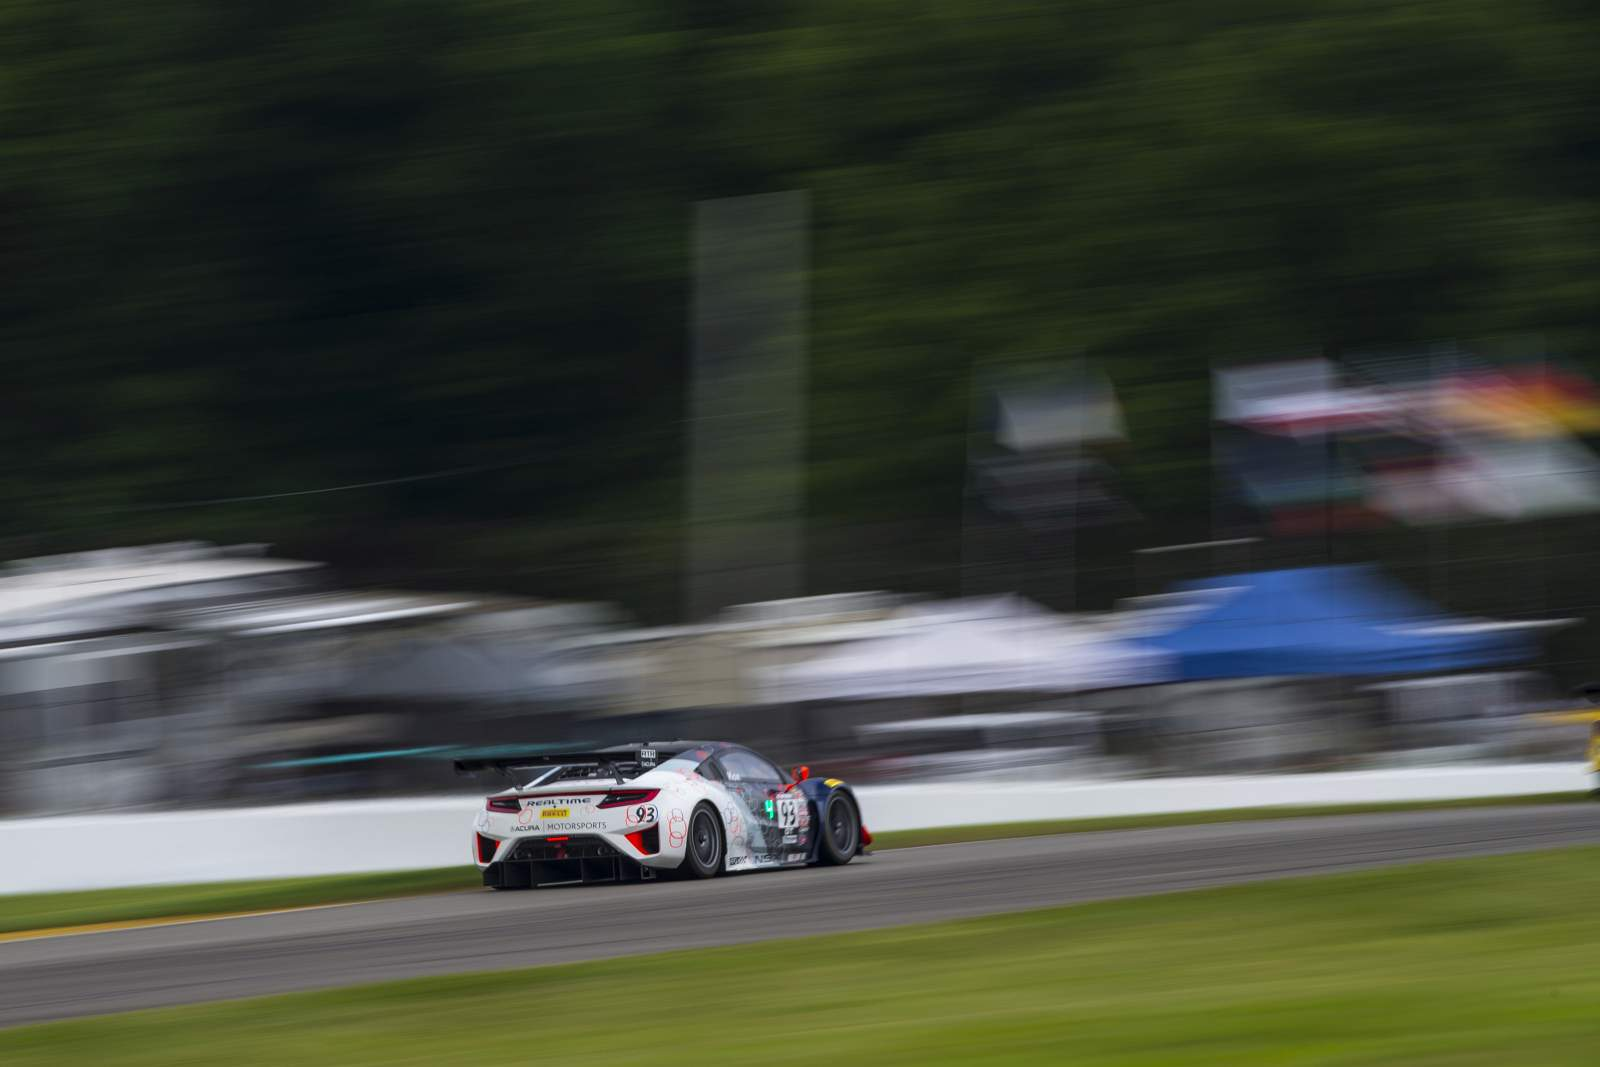 peter-kox-realtime-racing-pirelli-world-challenge-mid-ohio-141